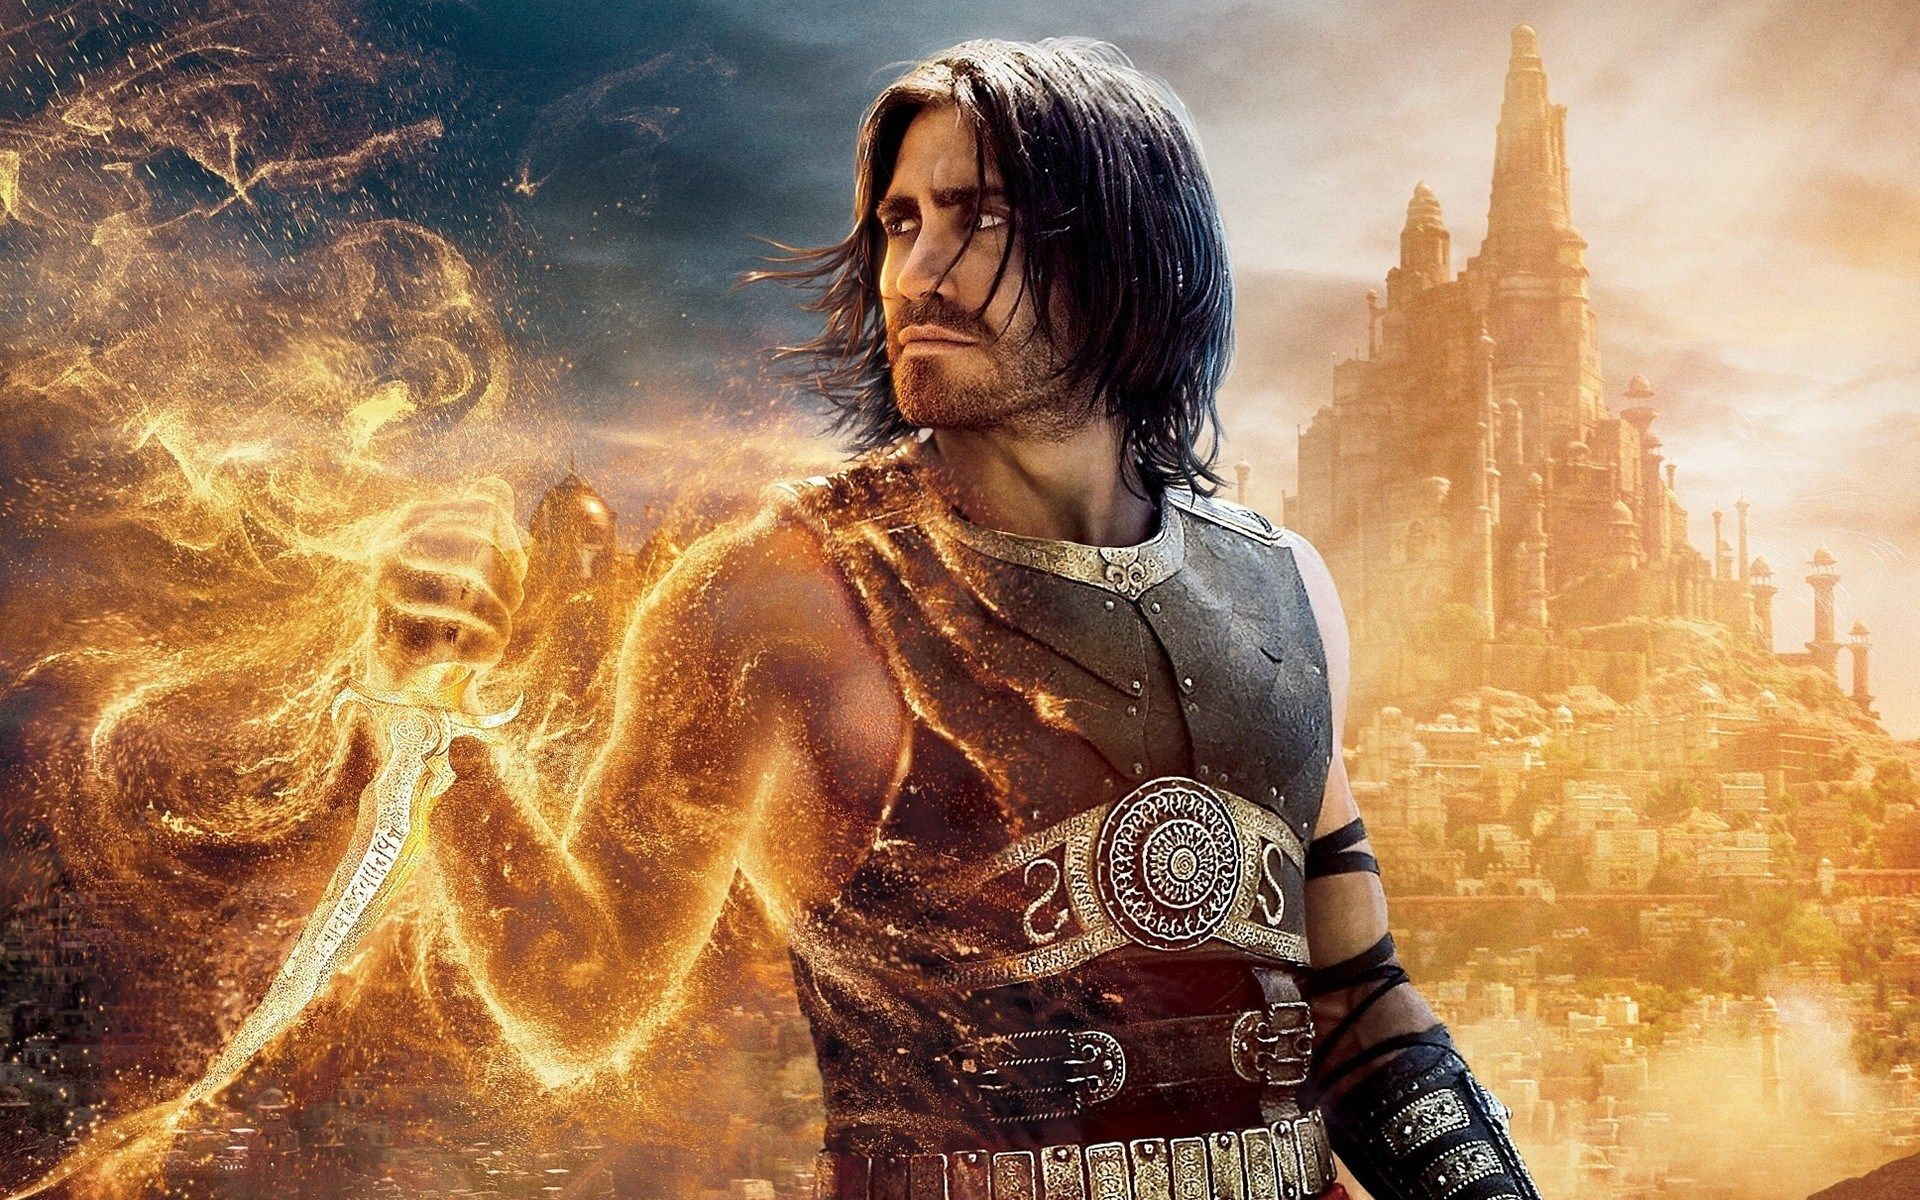 1668533 Prince Of Persia The Sands Of Time Category Wallpaper